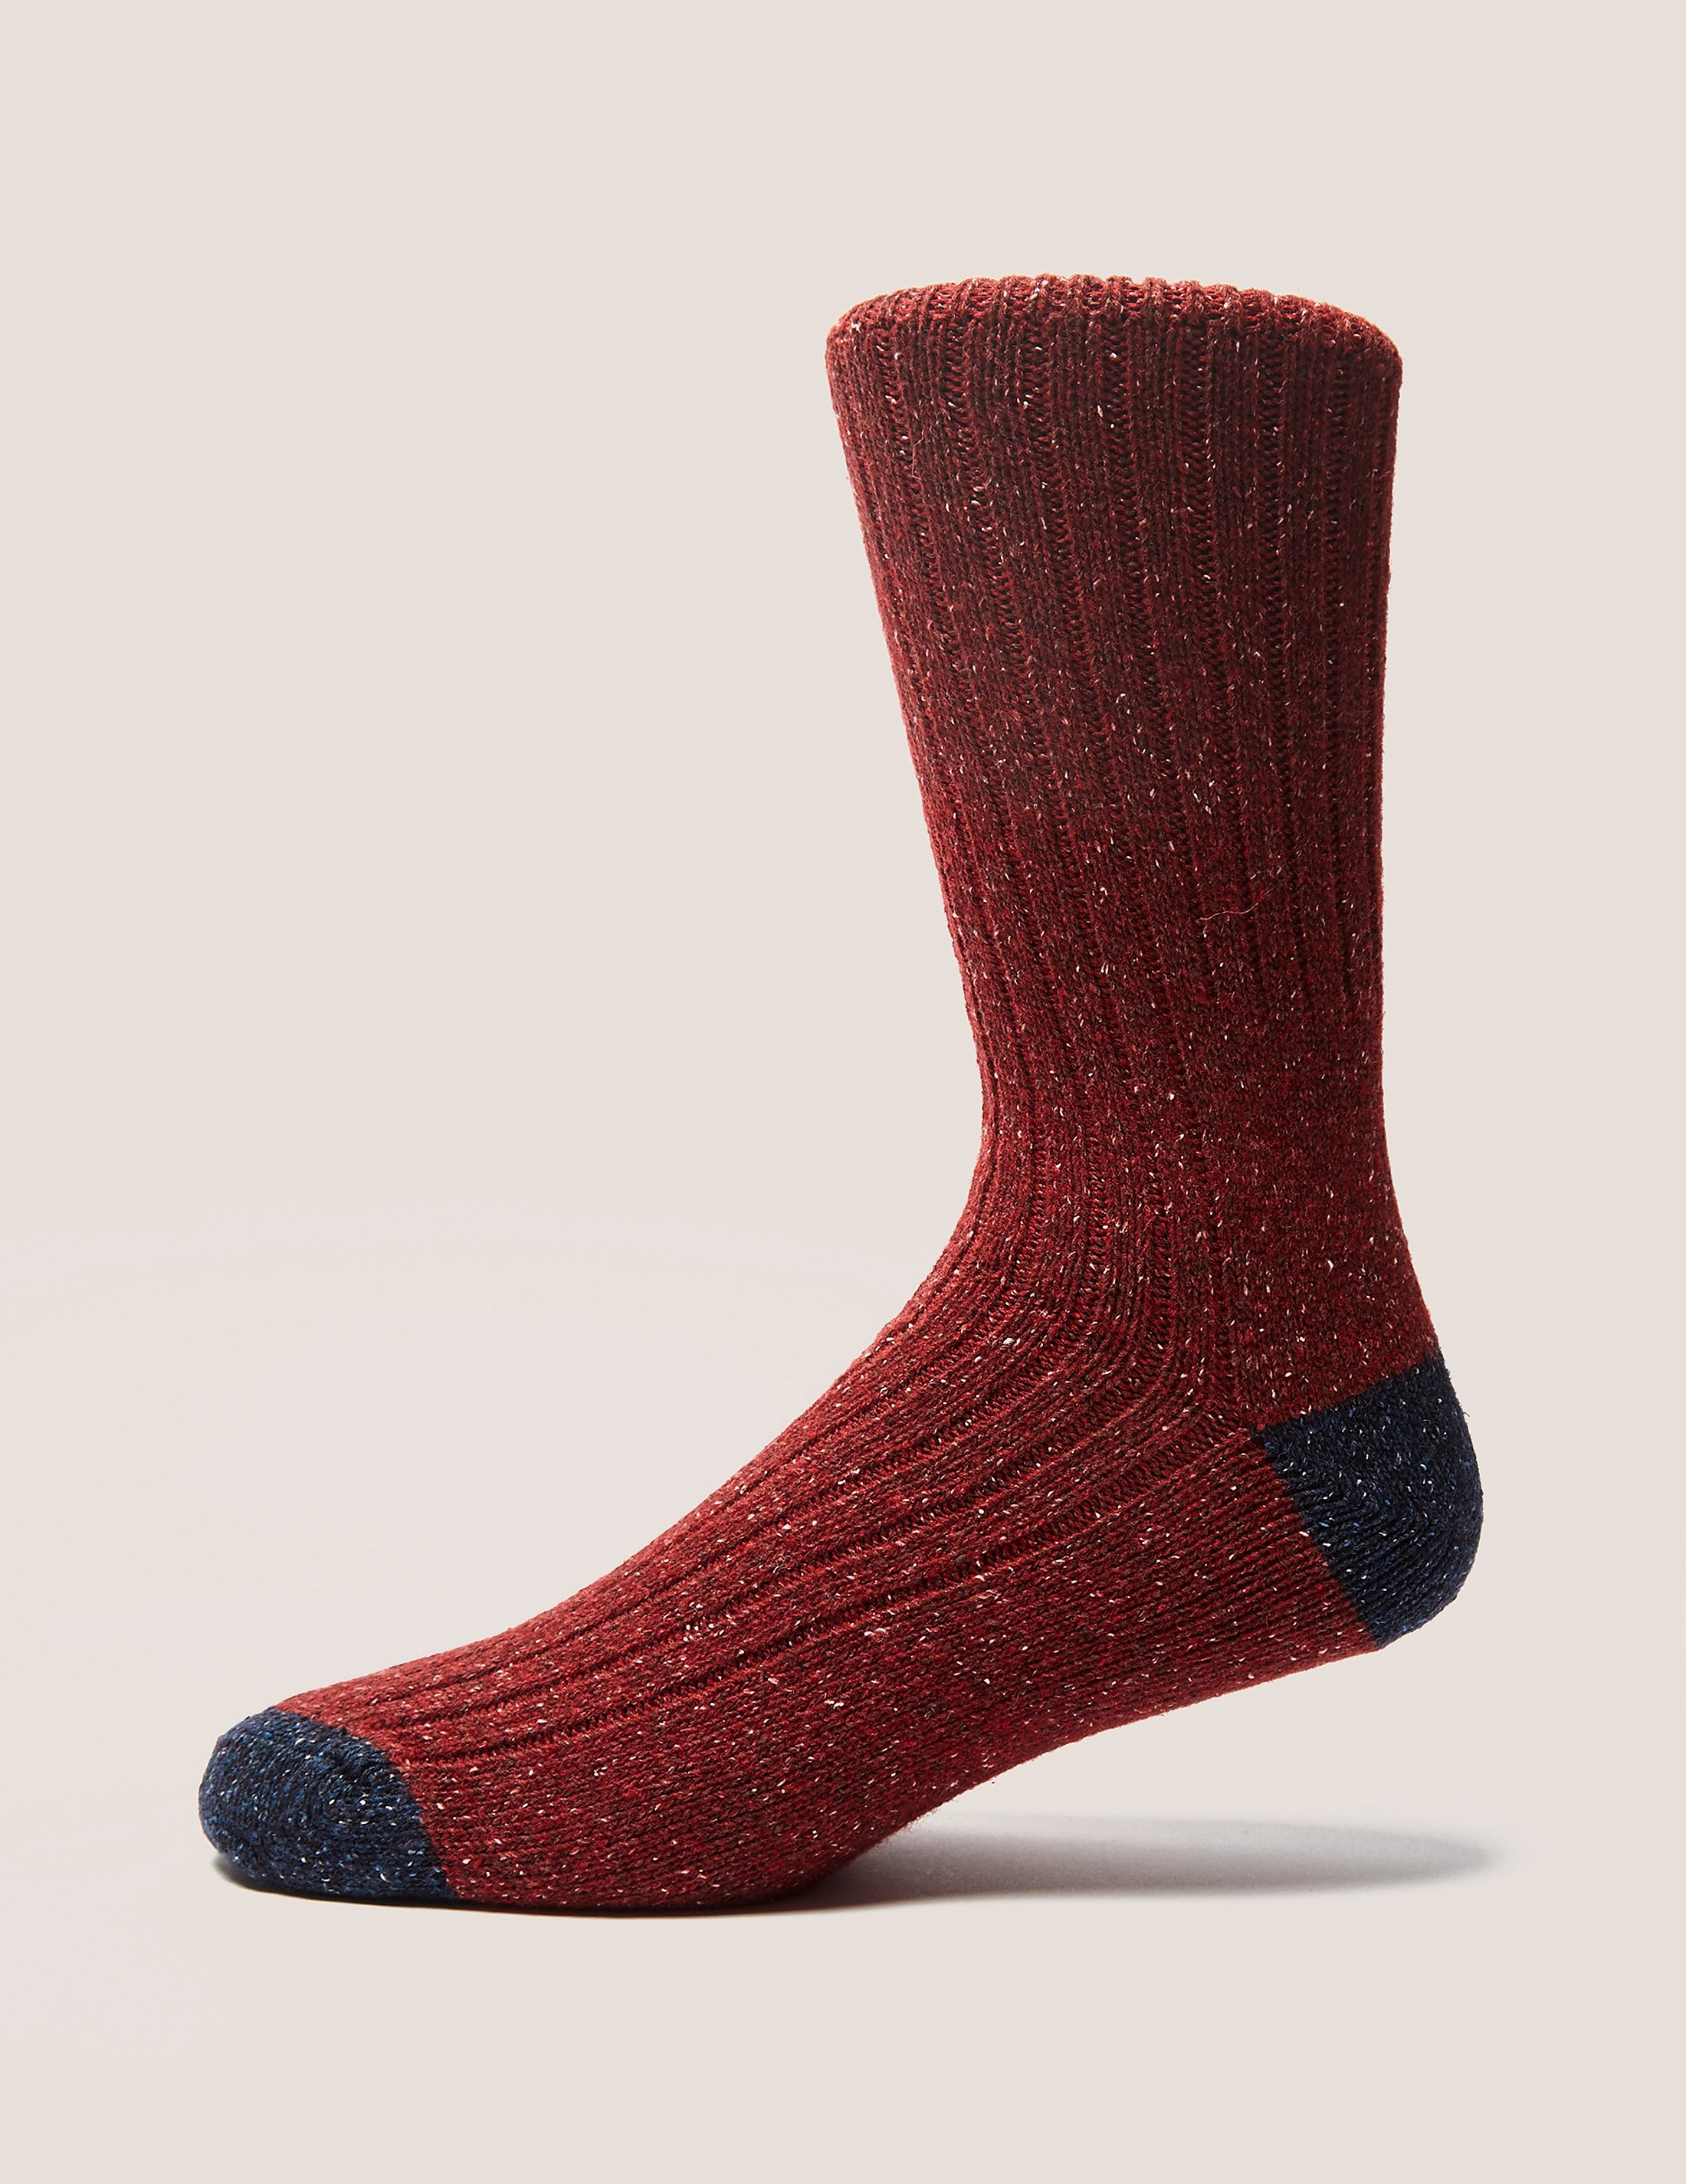 Barbour Houghton Socks